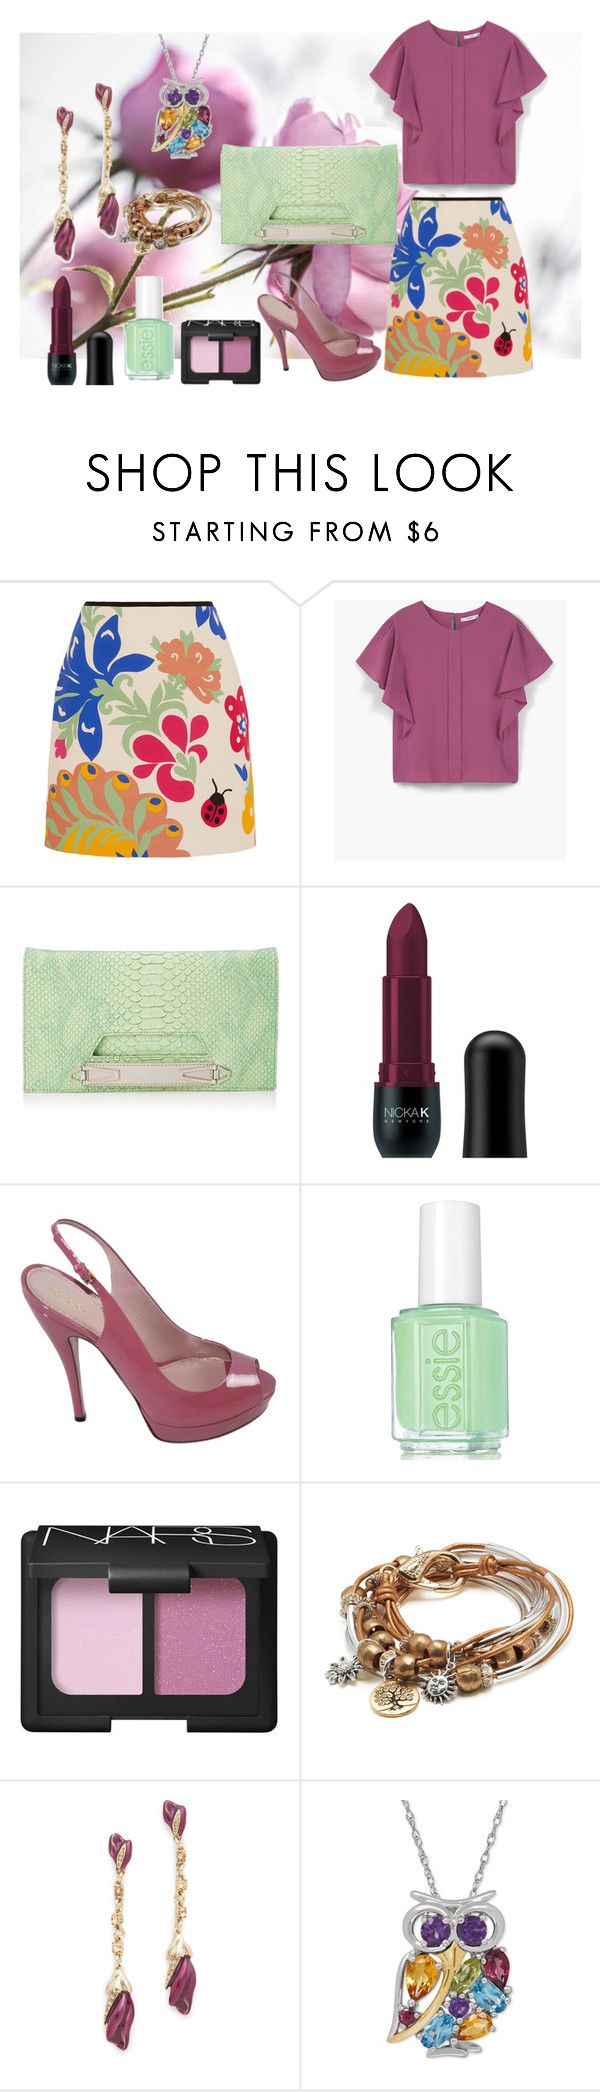 """hola!"" by kaderkulcu ❤ liked on Polyvore featuring Victoria, Victoria Beckham, MANGO, Danielle Nicole, Nicka K, Gucci, Essie, NARS Cosmetics, Lizzy James and Oscar de la Renta"